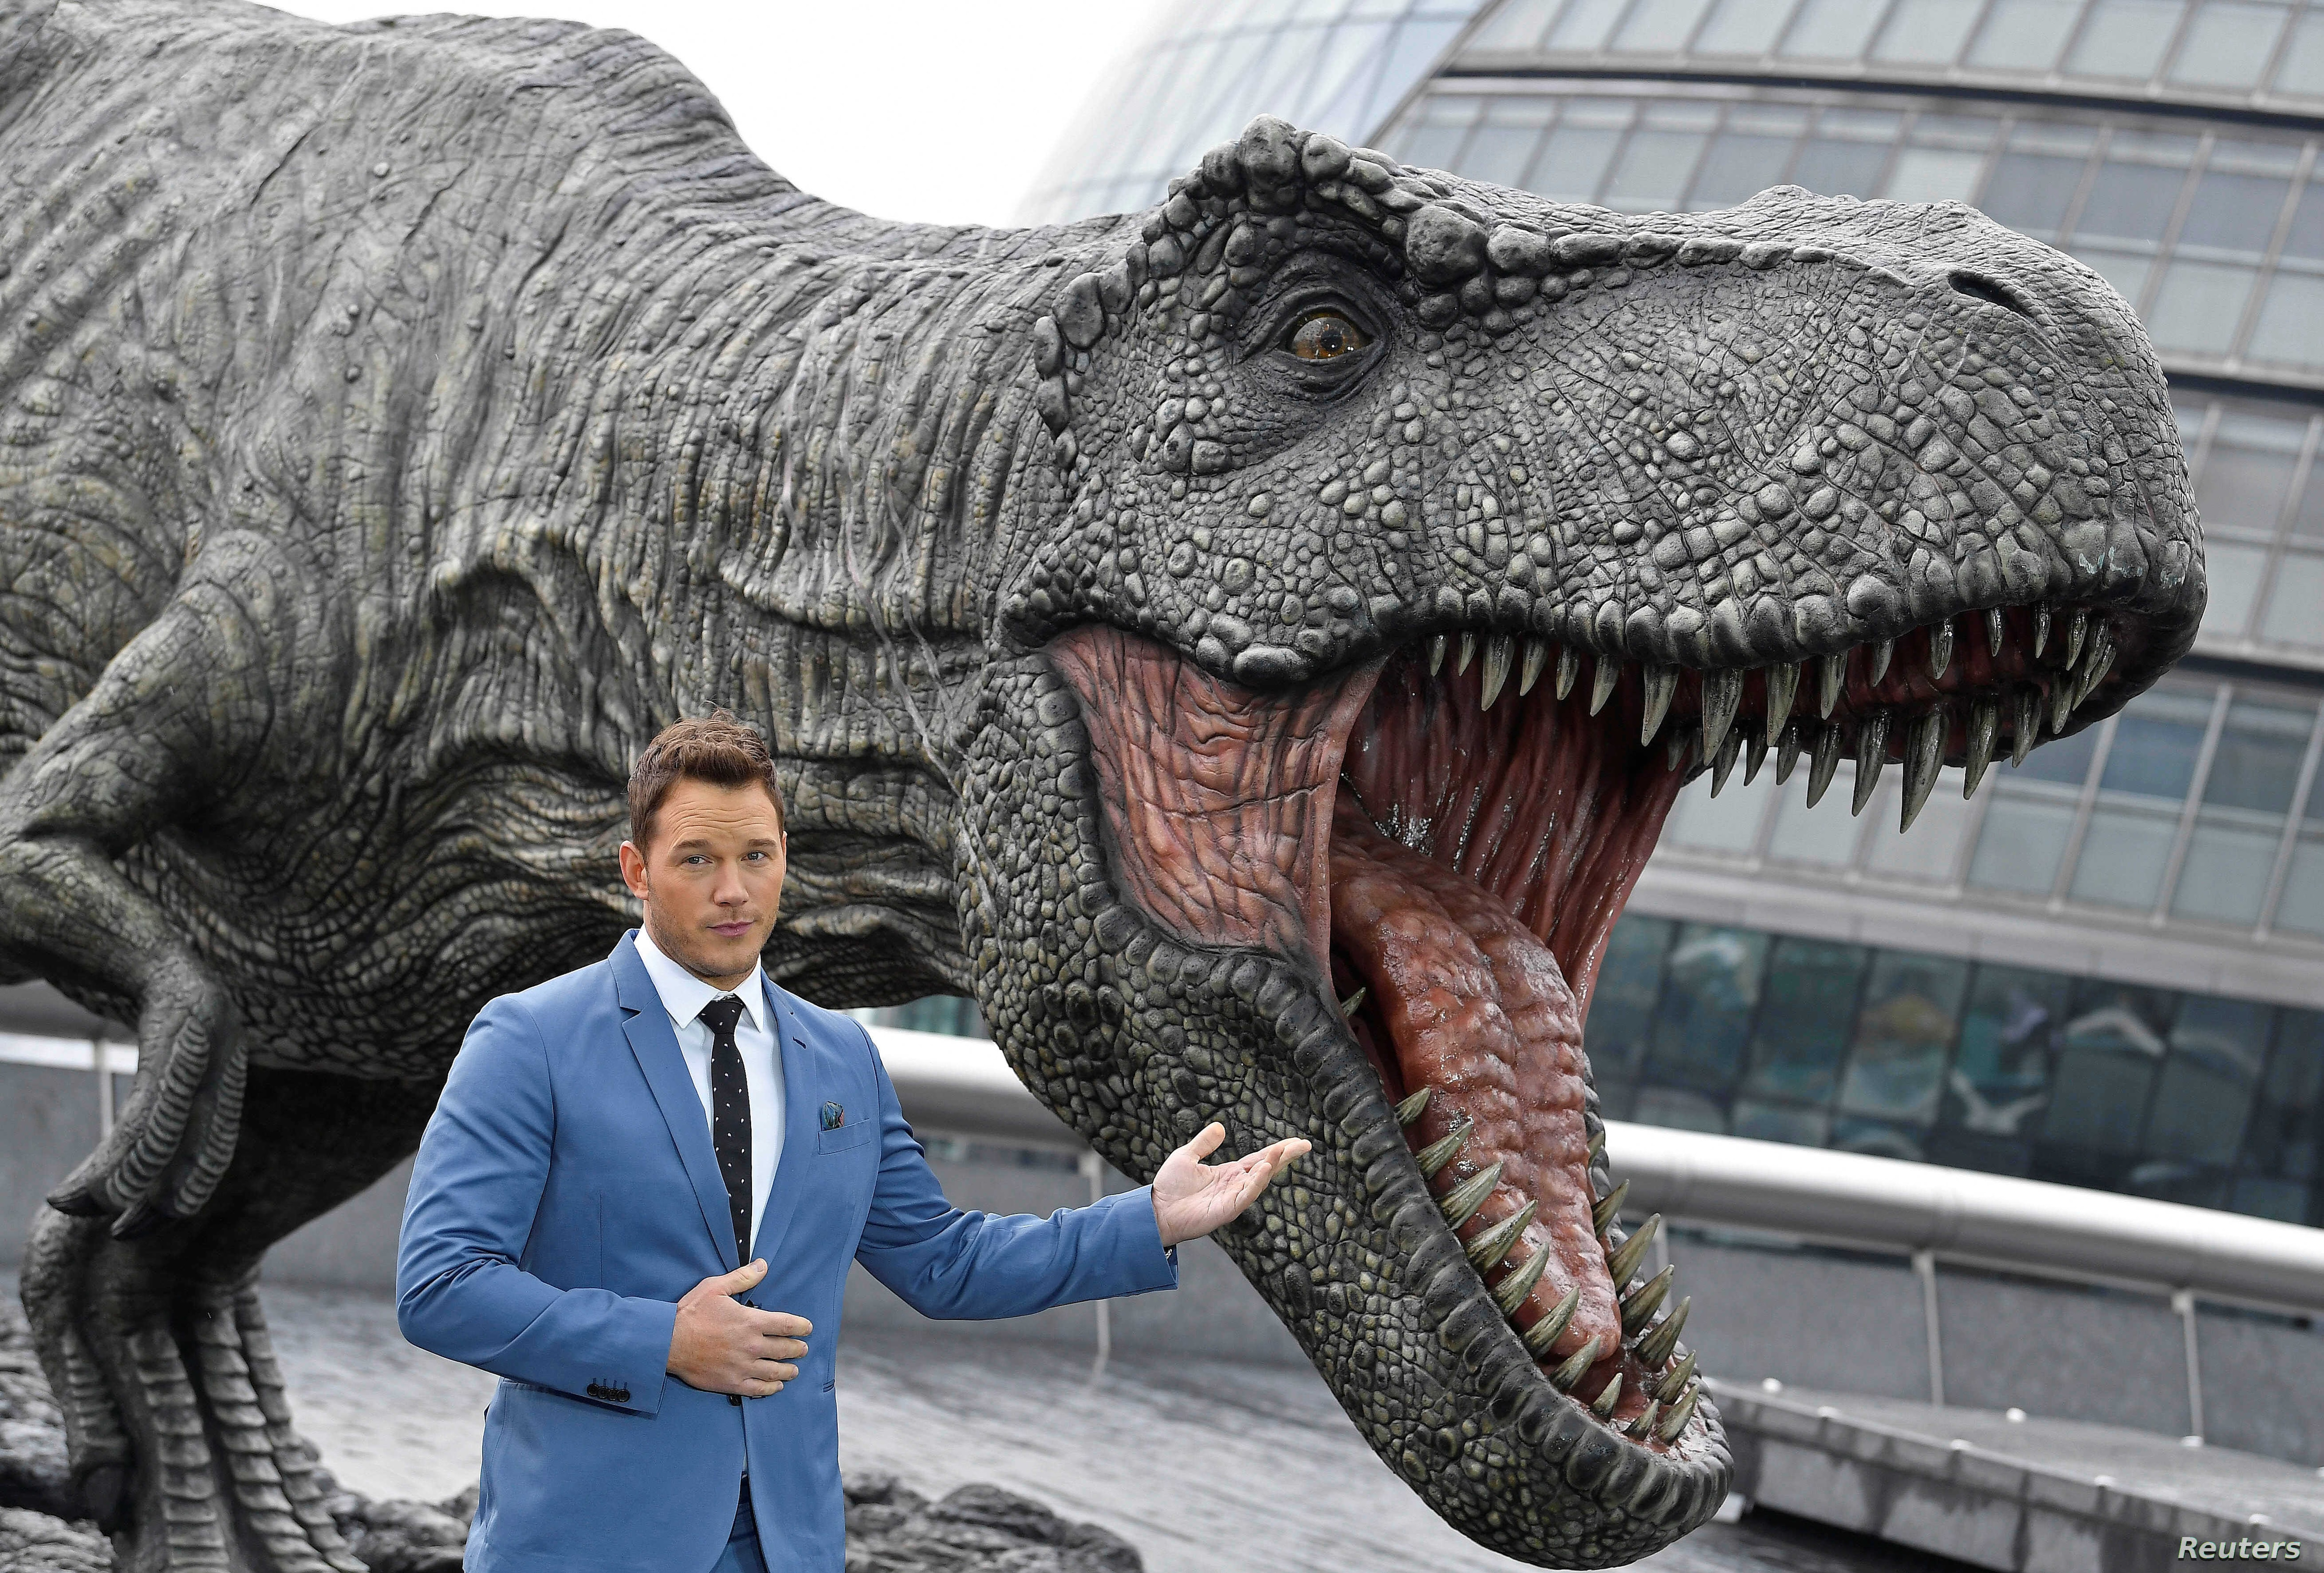 In Jurassic World A Dino Sized Animal Rights Parable Voice Of America English